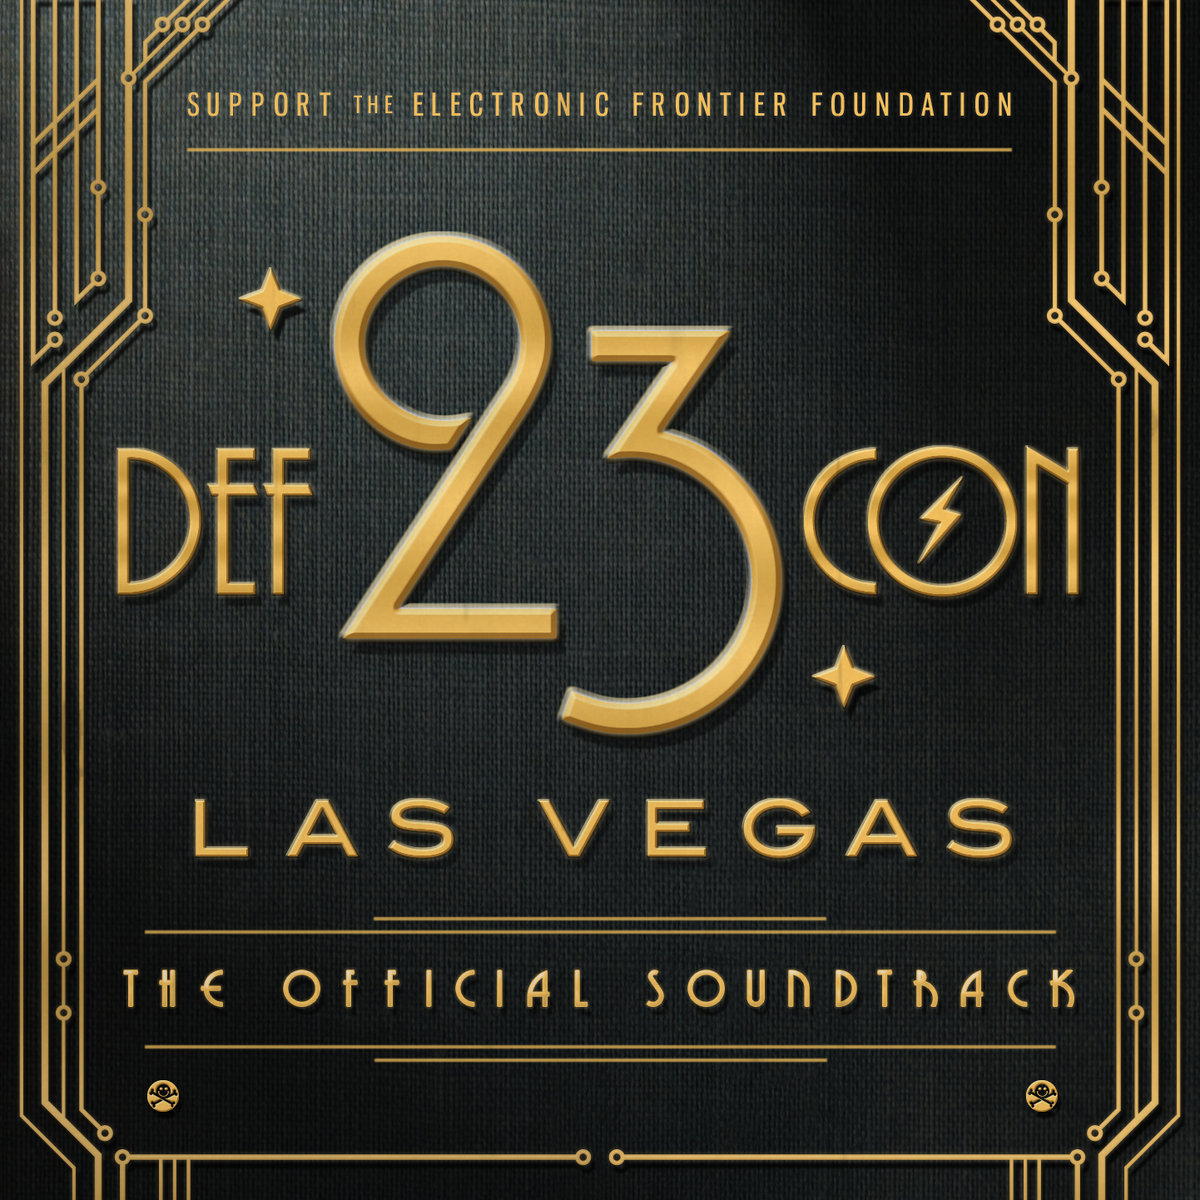 VibeSquad - Who Knows @ 'DEF CON 23: The Official Soundtrack' album (bass, charity)